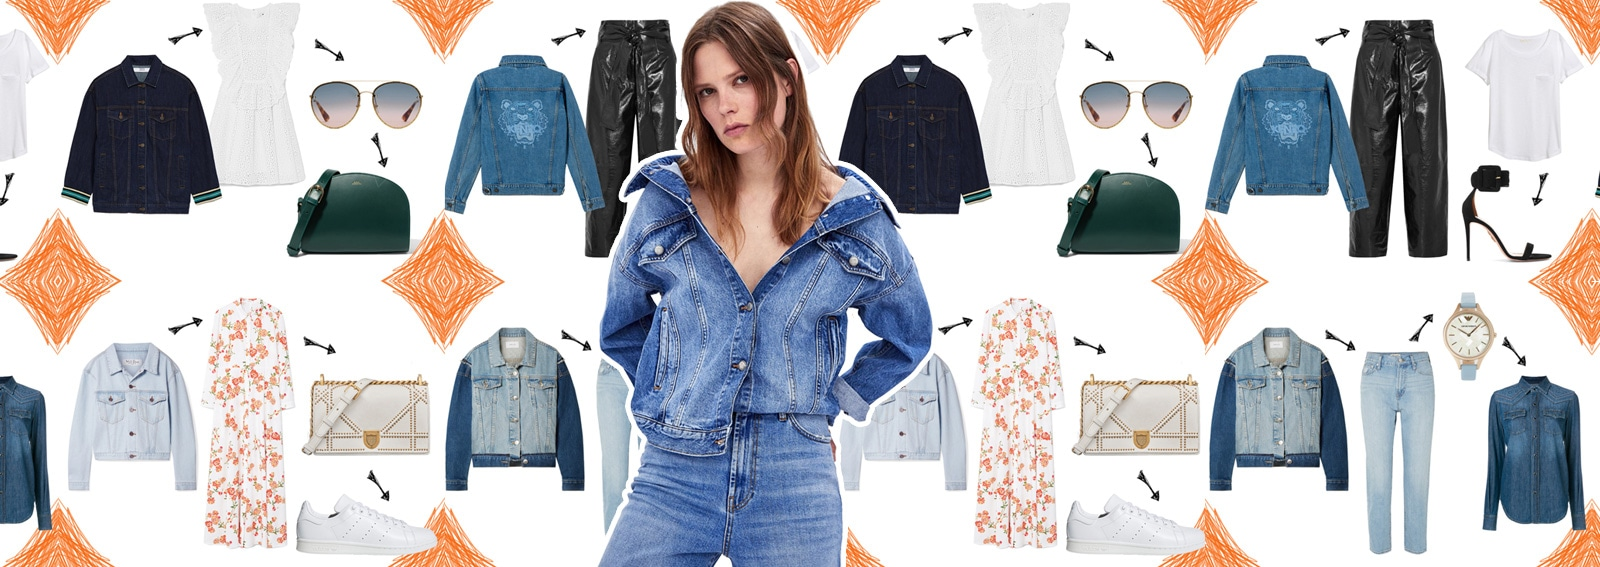 Giacca di jeans: 4 look